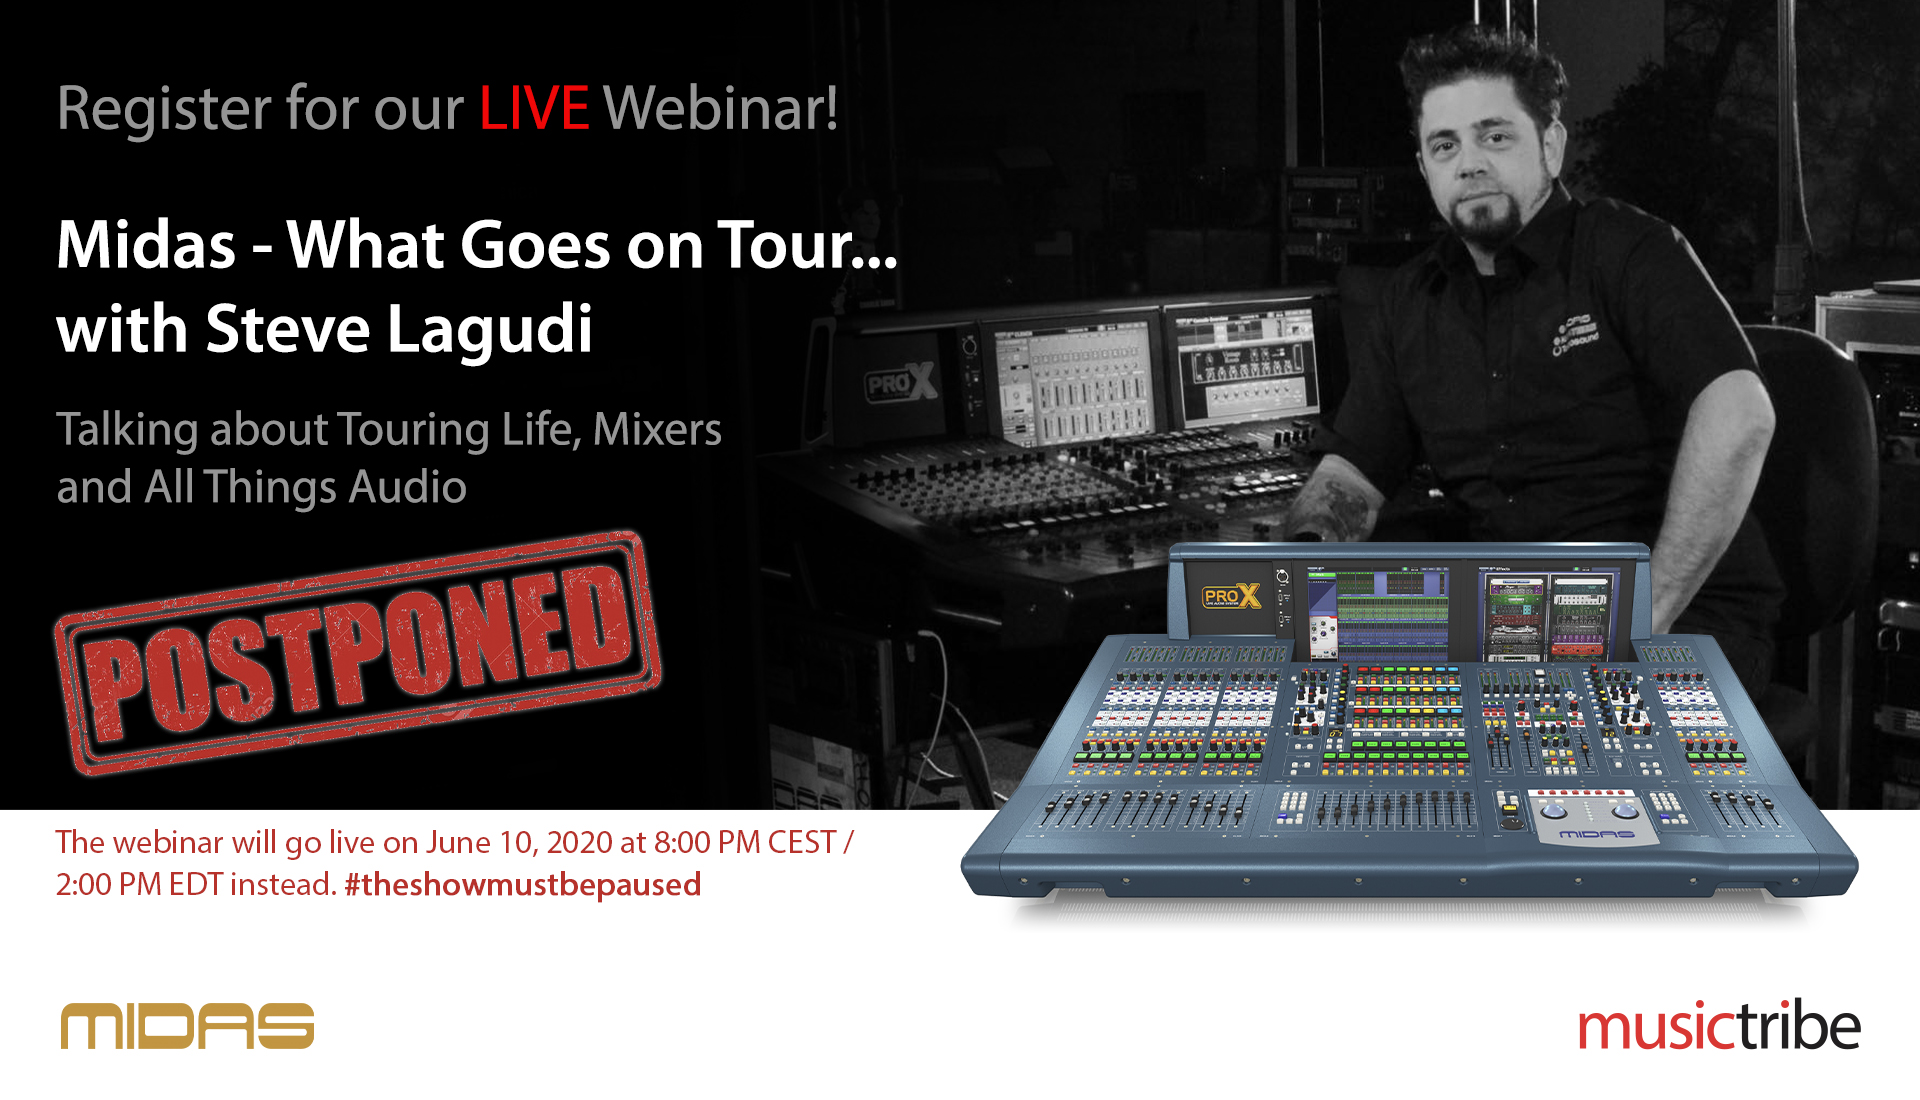 Midas LIVE Webinar: What Goes On Tour... with Steve Lagudi